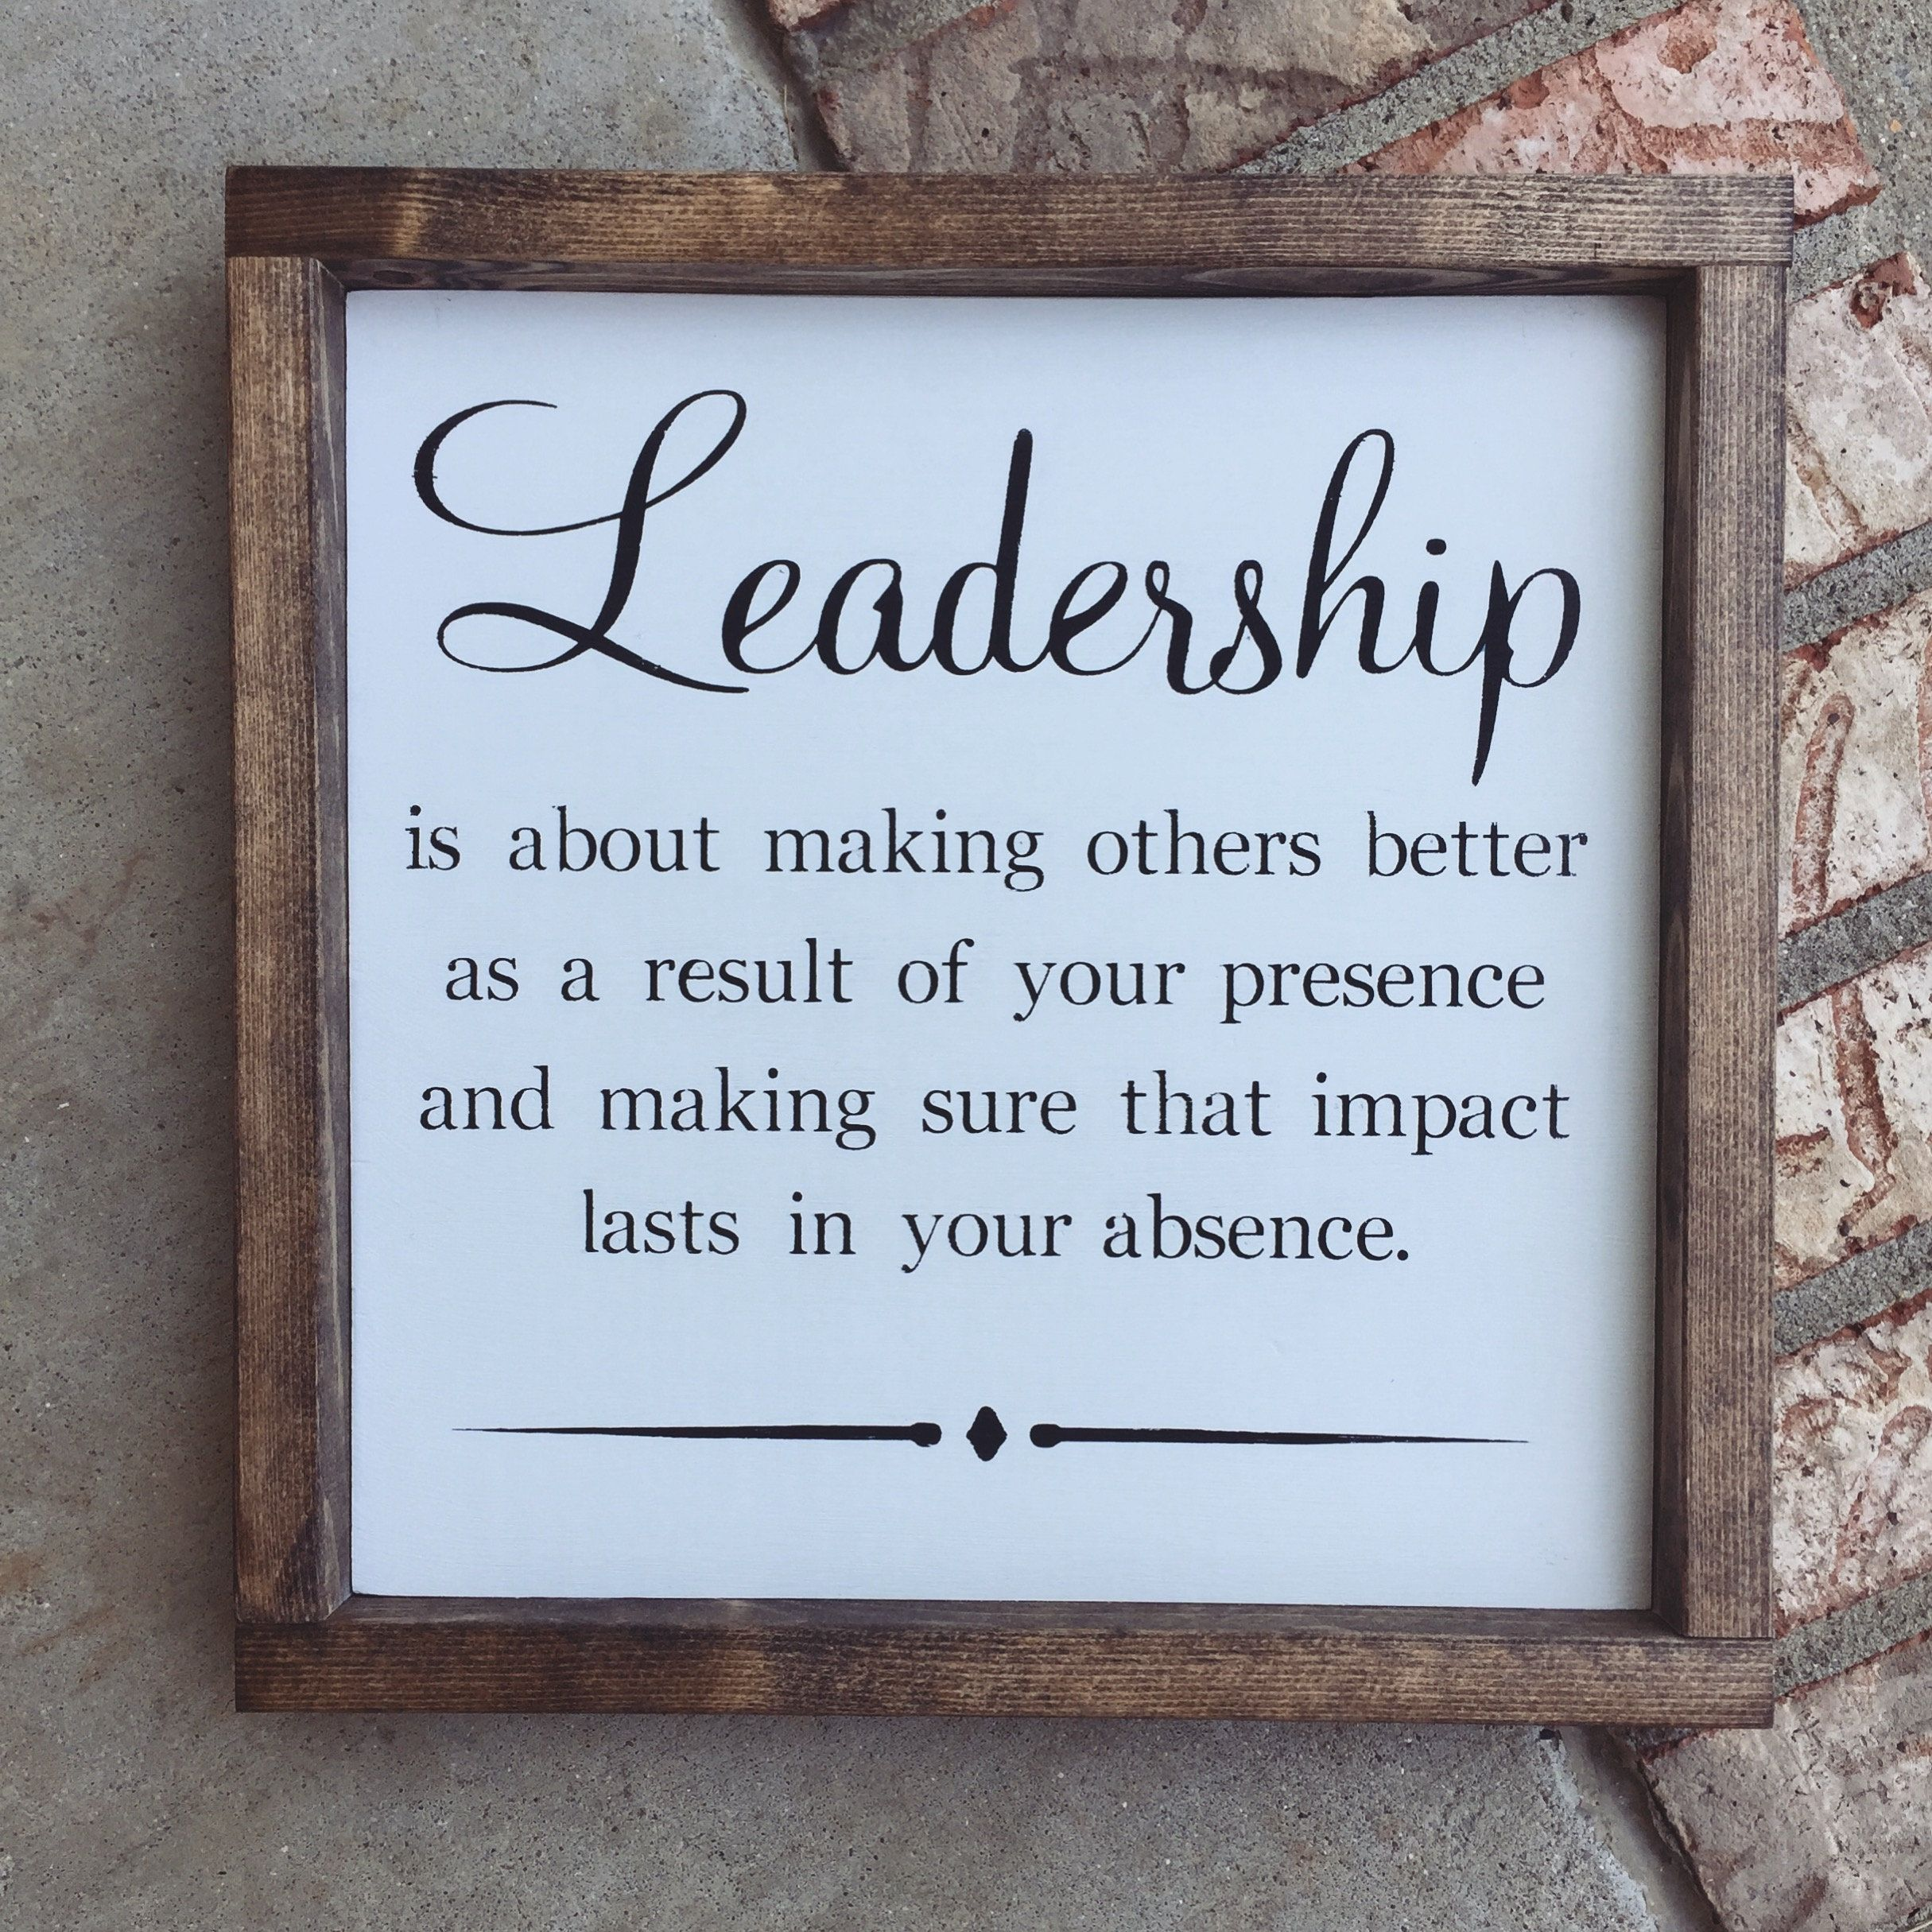 Leadership Quote Wood Sign Office Decor Retirement Gift Boss Gift In 2021 Gifts For Boss Gifts For Your Boss Gifts For Office